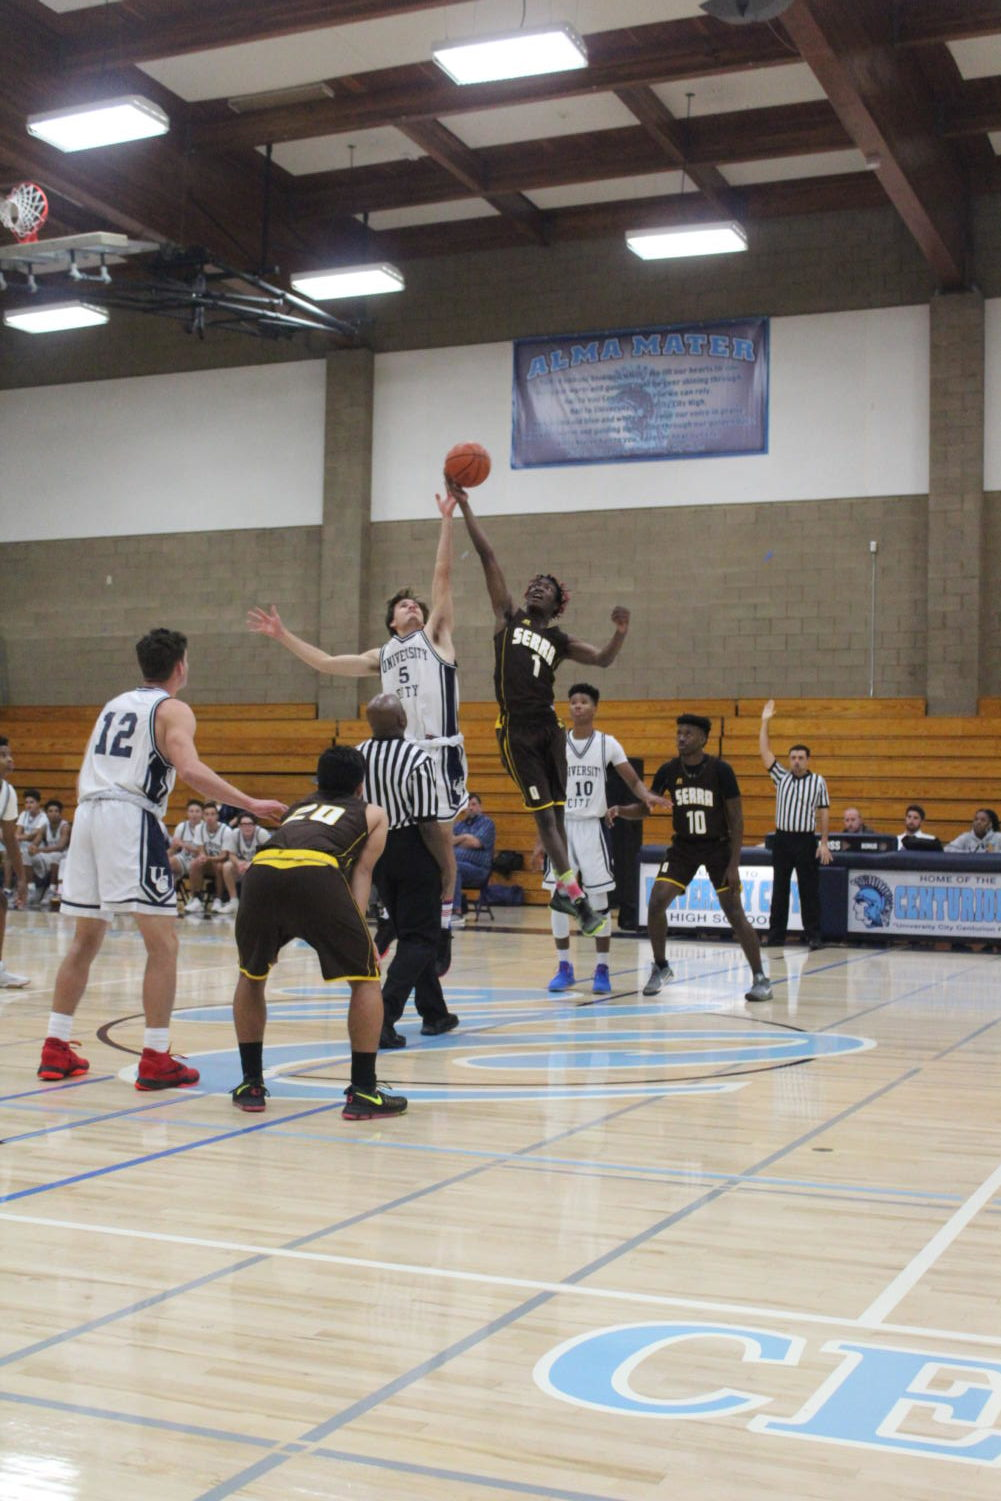 Junior Benito Hurtado goes up for the tip-off against Serra High.